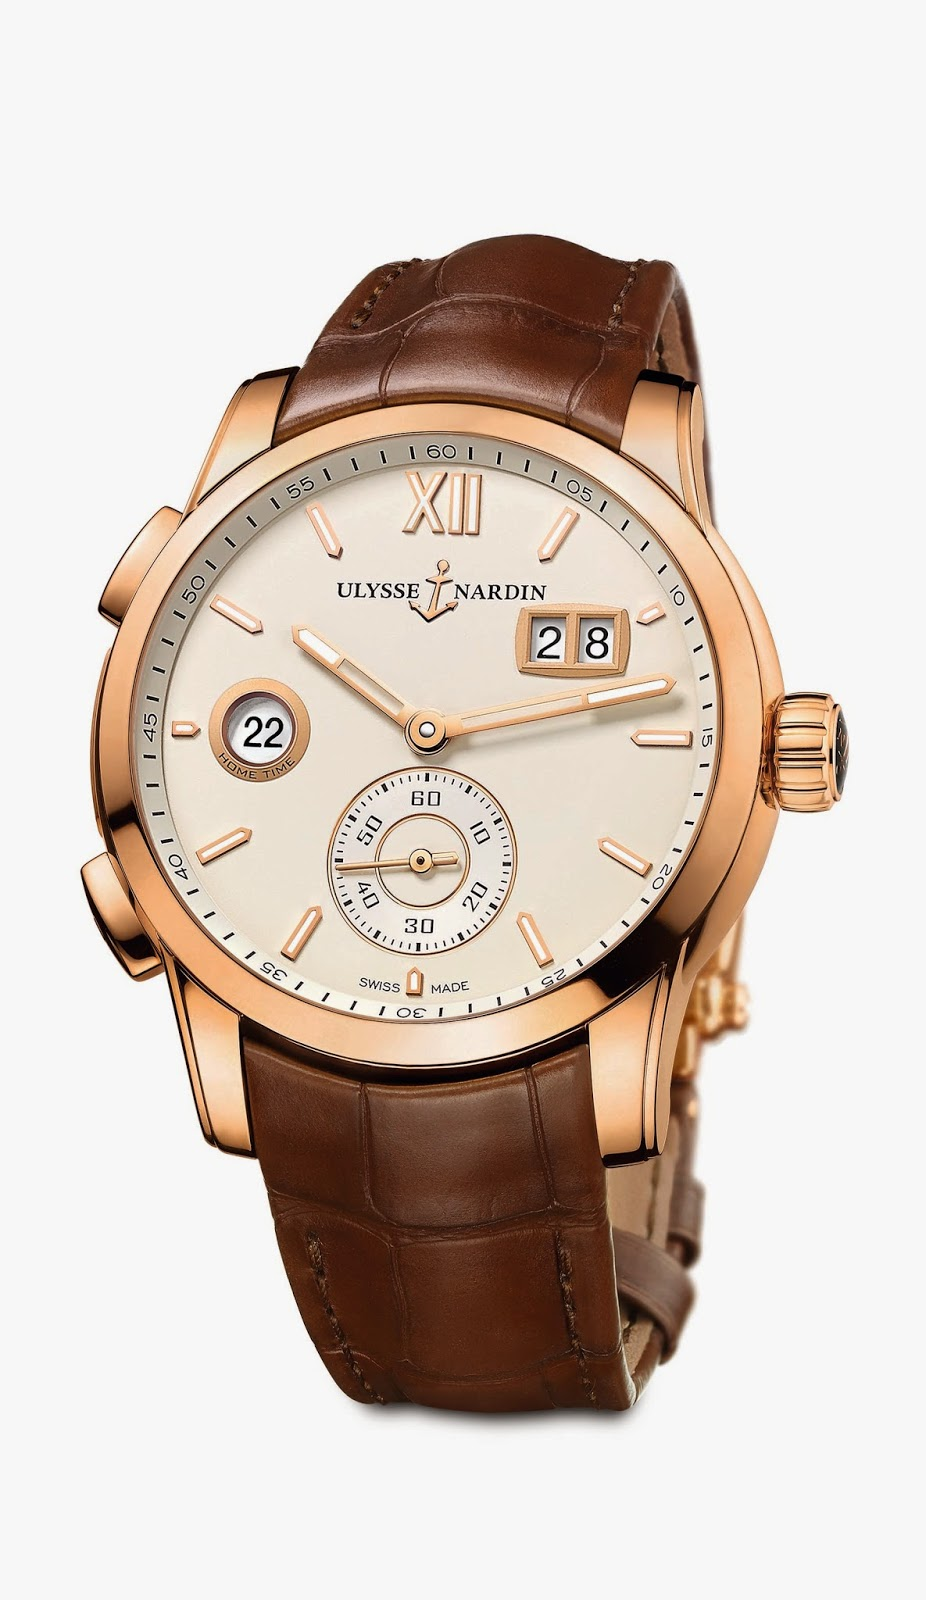 Ullysse Nardin Dual Time Manufacture5